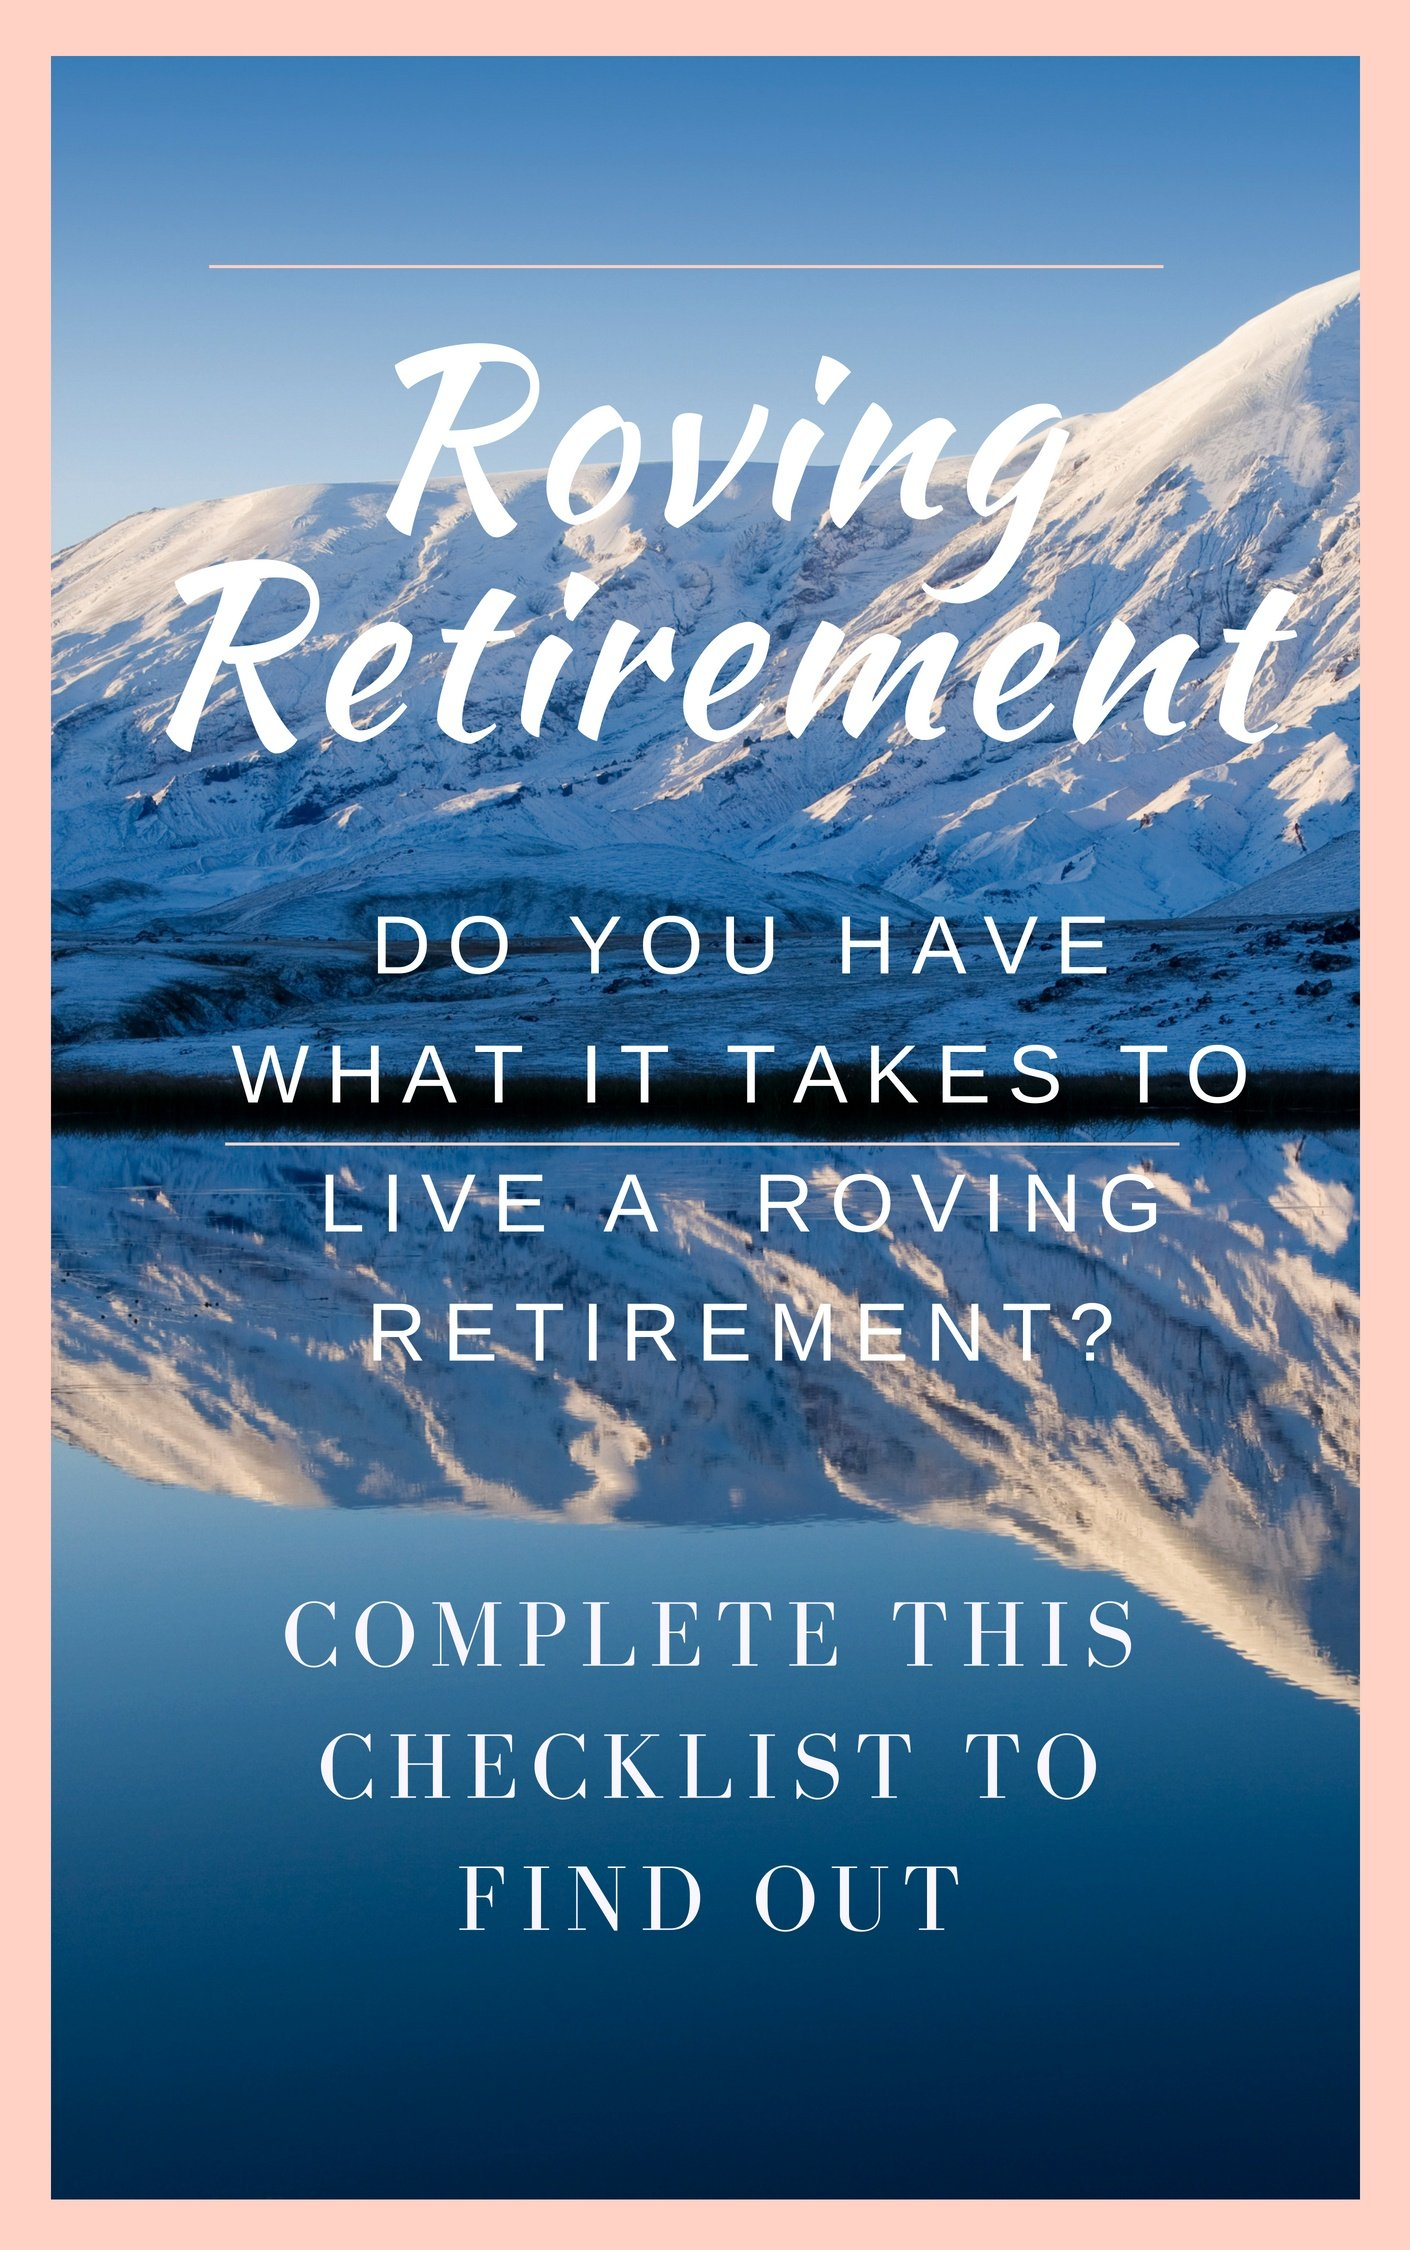 Roving Retirement Checklist